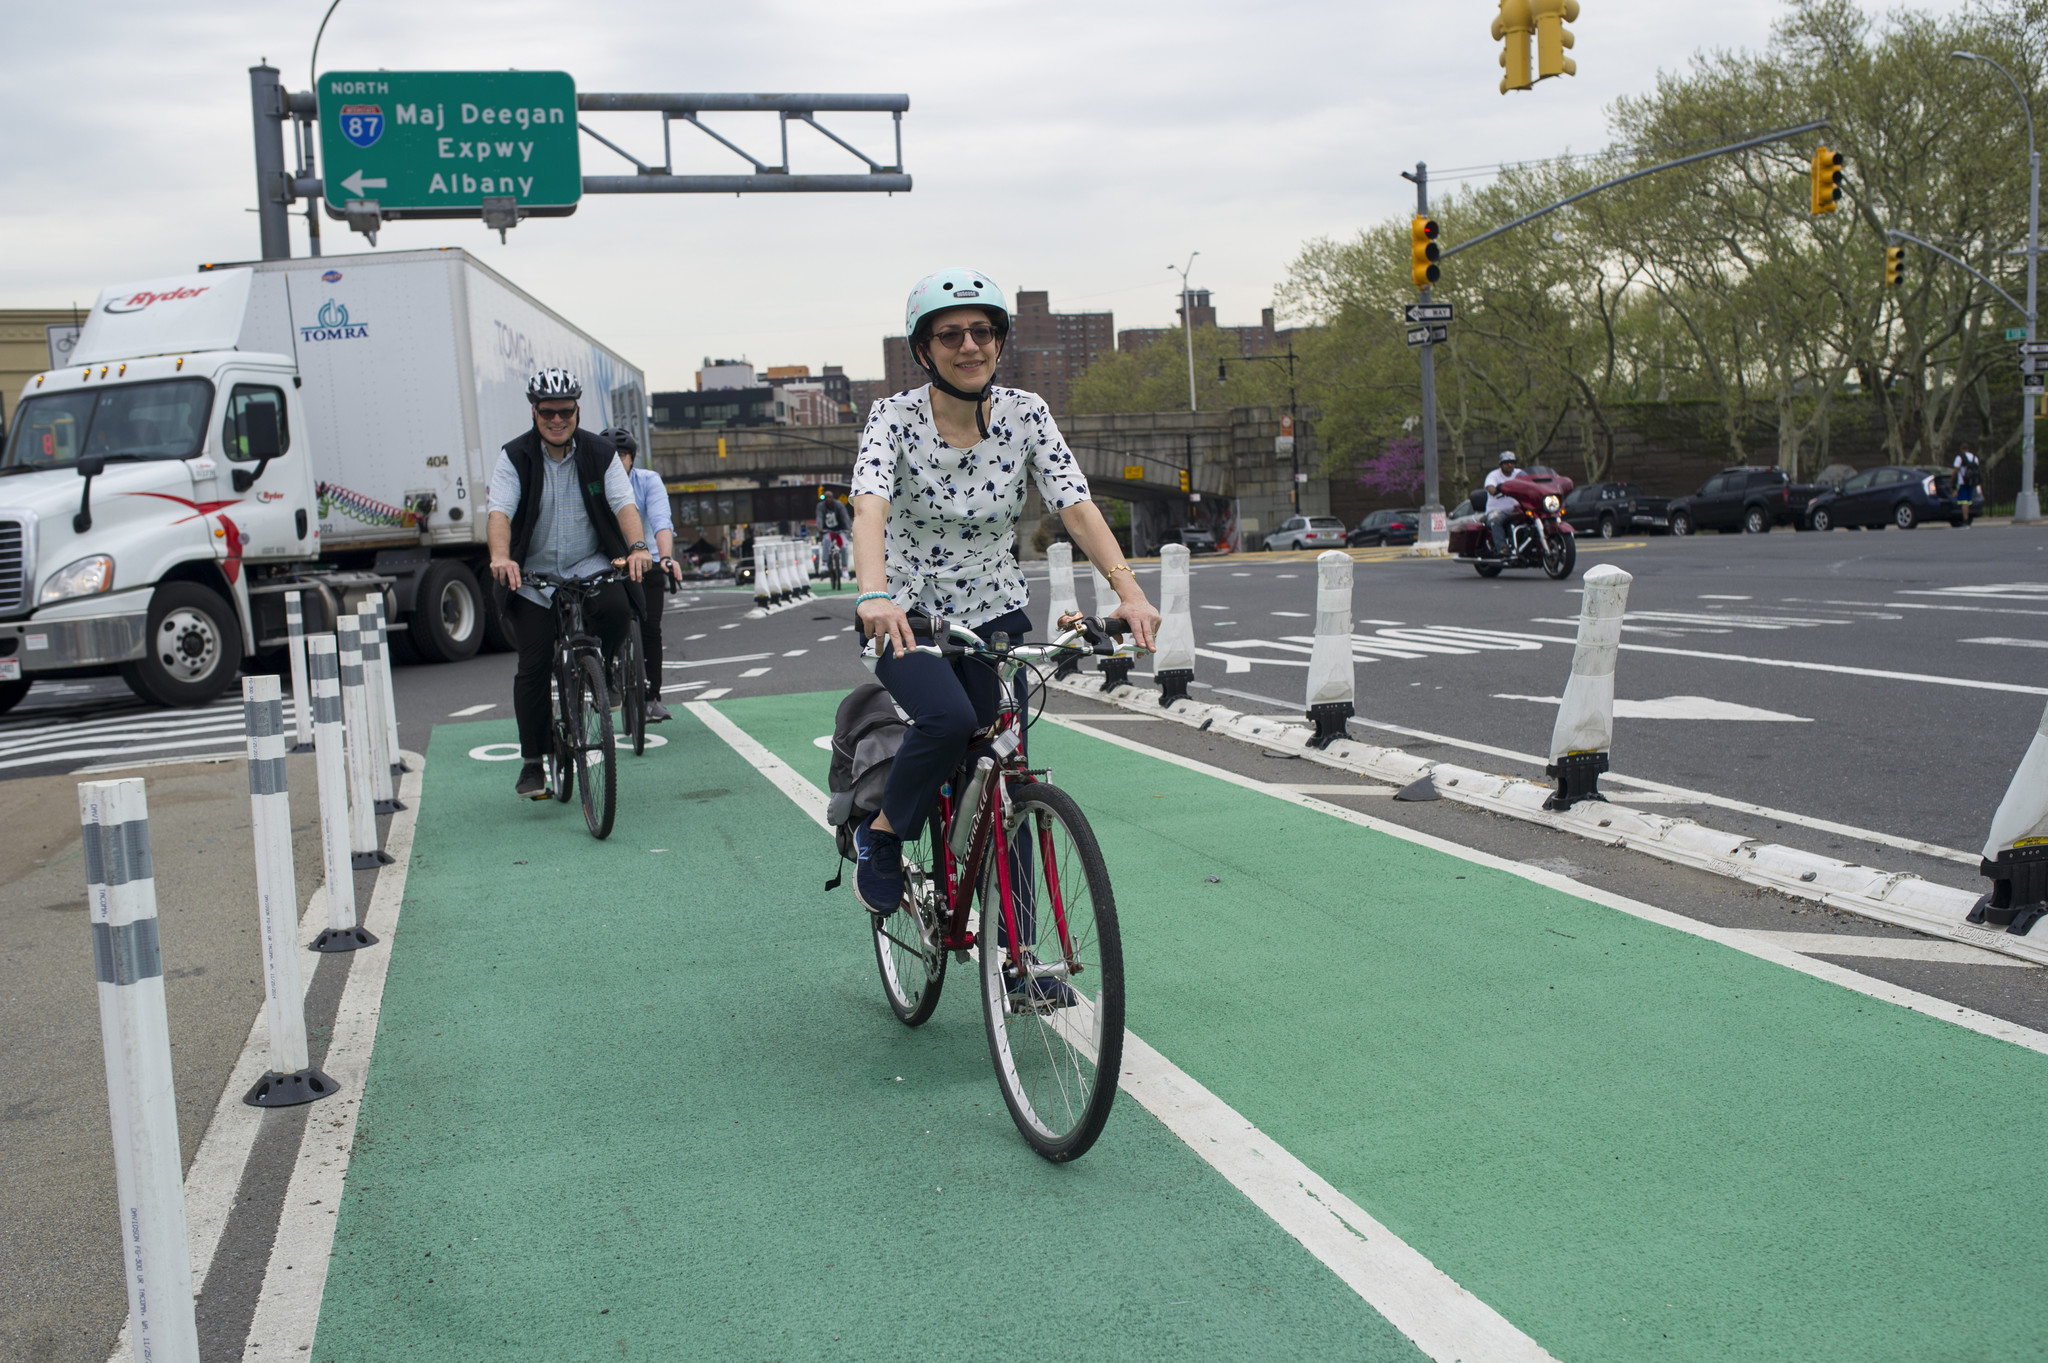 The right way to ride a bike: Some advice from avid riders about cycling in the city